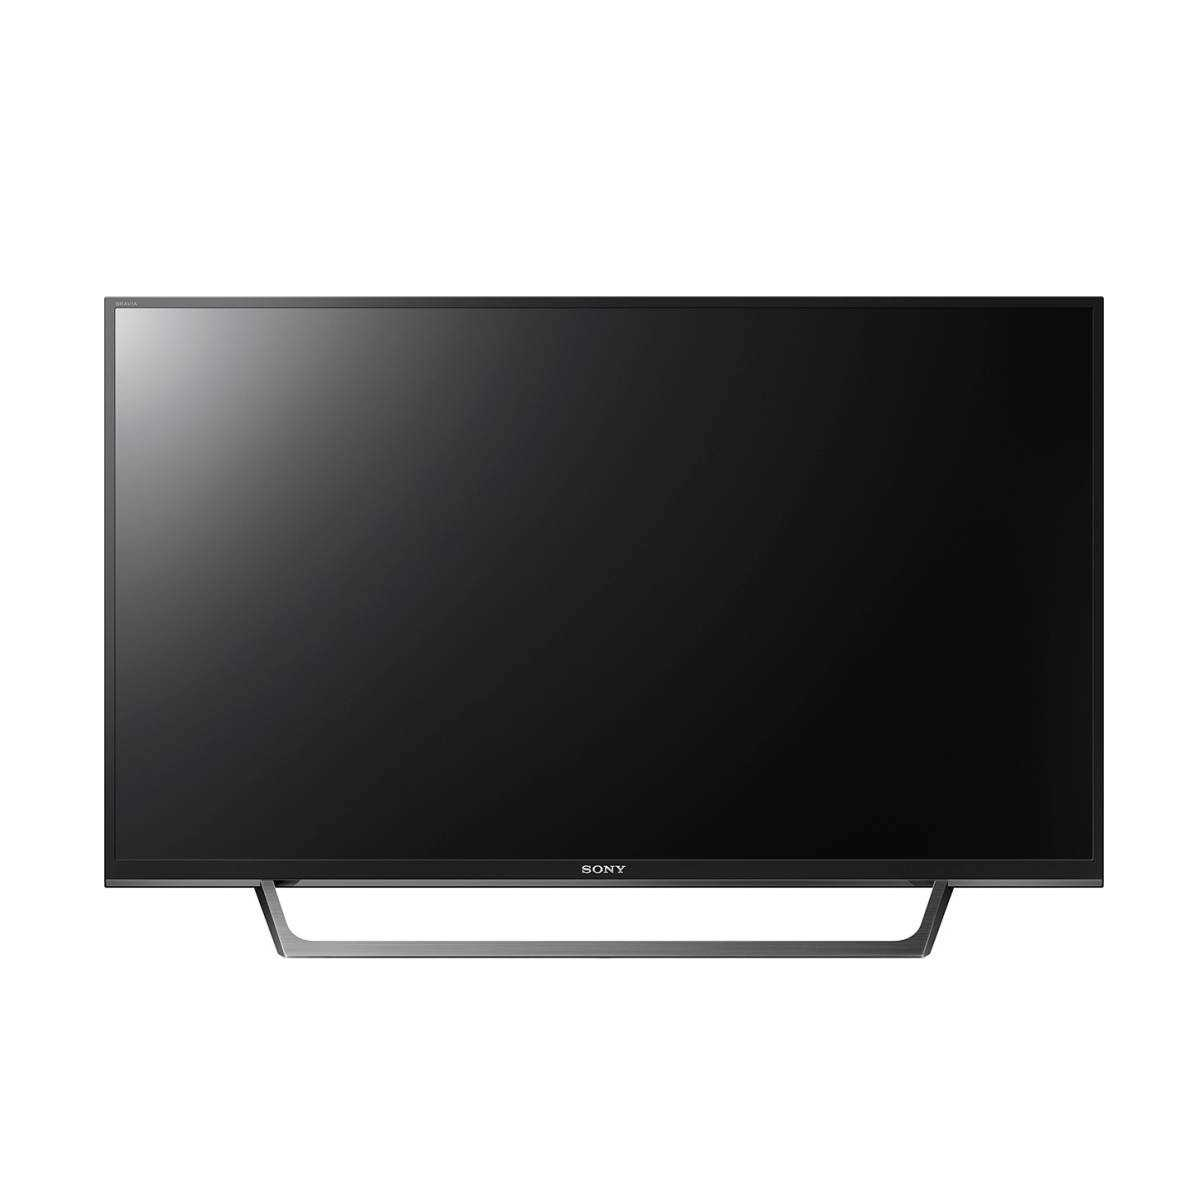 Sony Bravia KLV-49W672E 49 Inch Full HD Smart LED Television